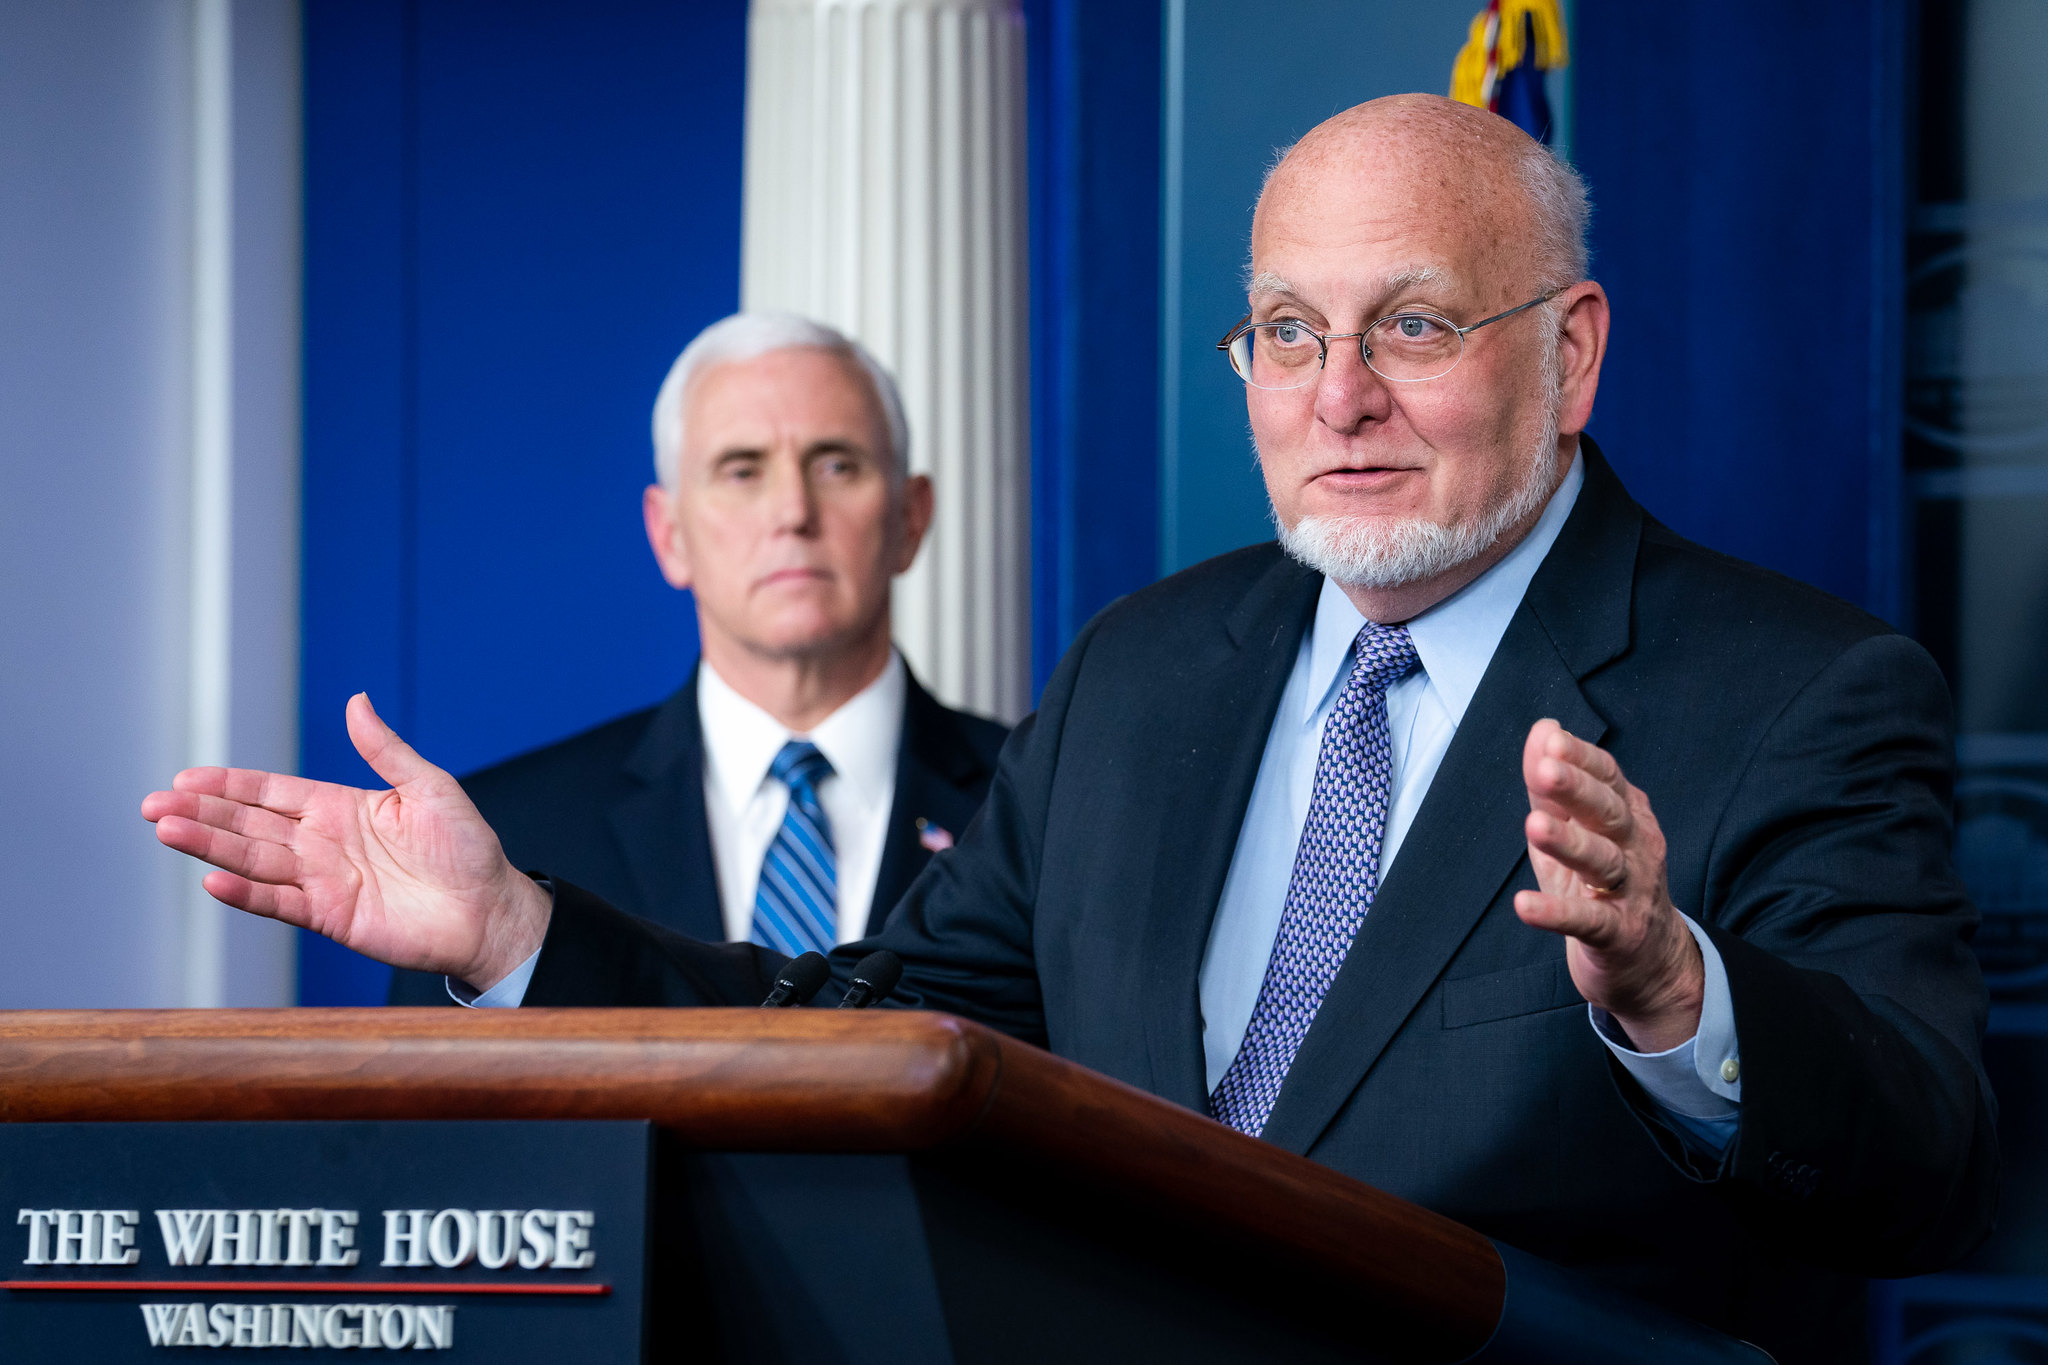 CDC Director Redfield speaks at a White House podium as Pence looks at him.